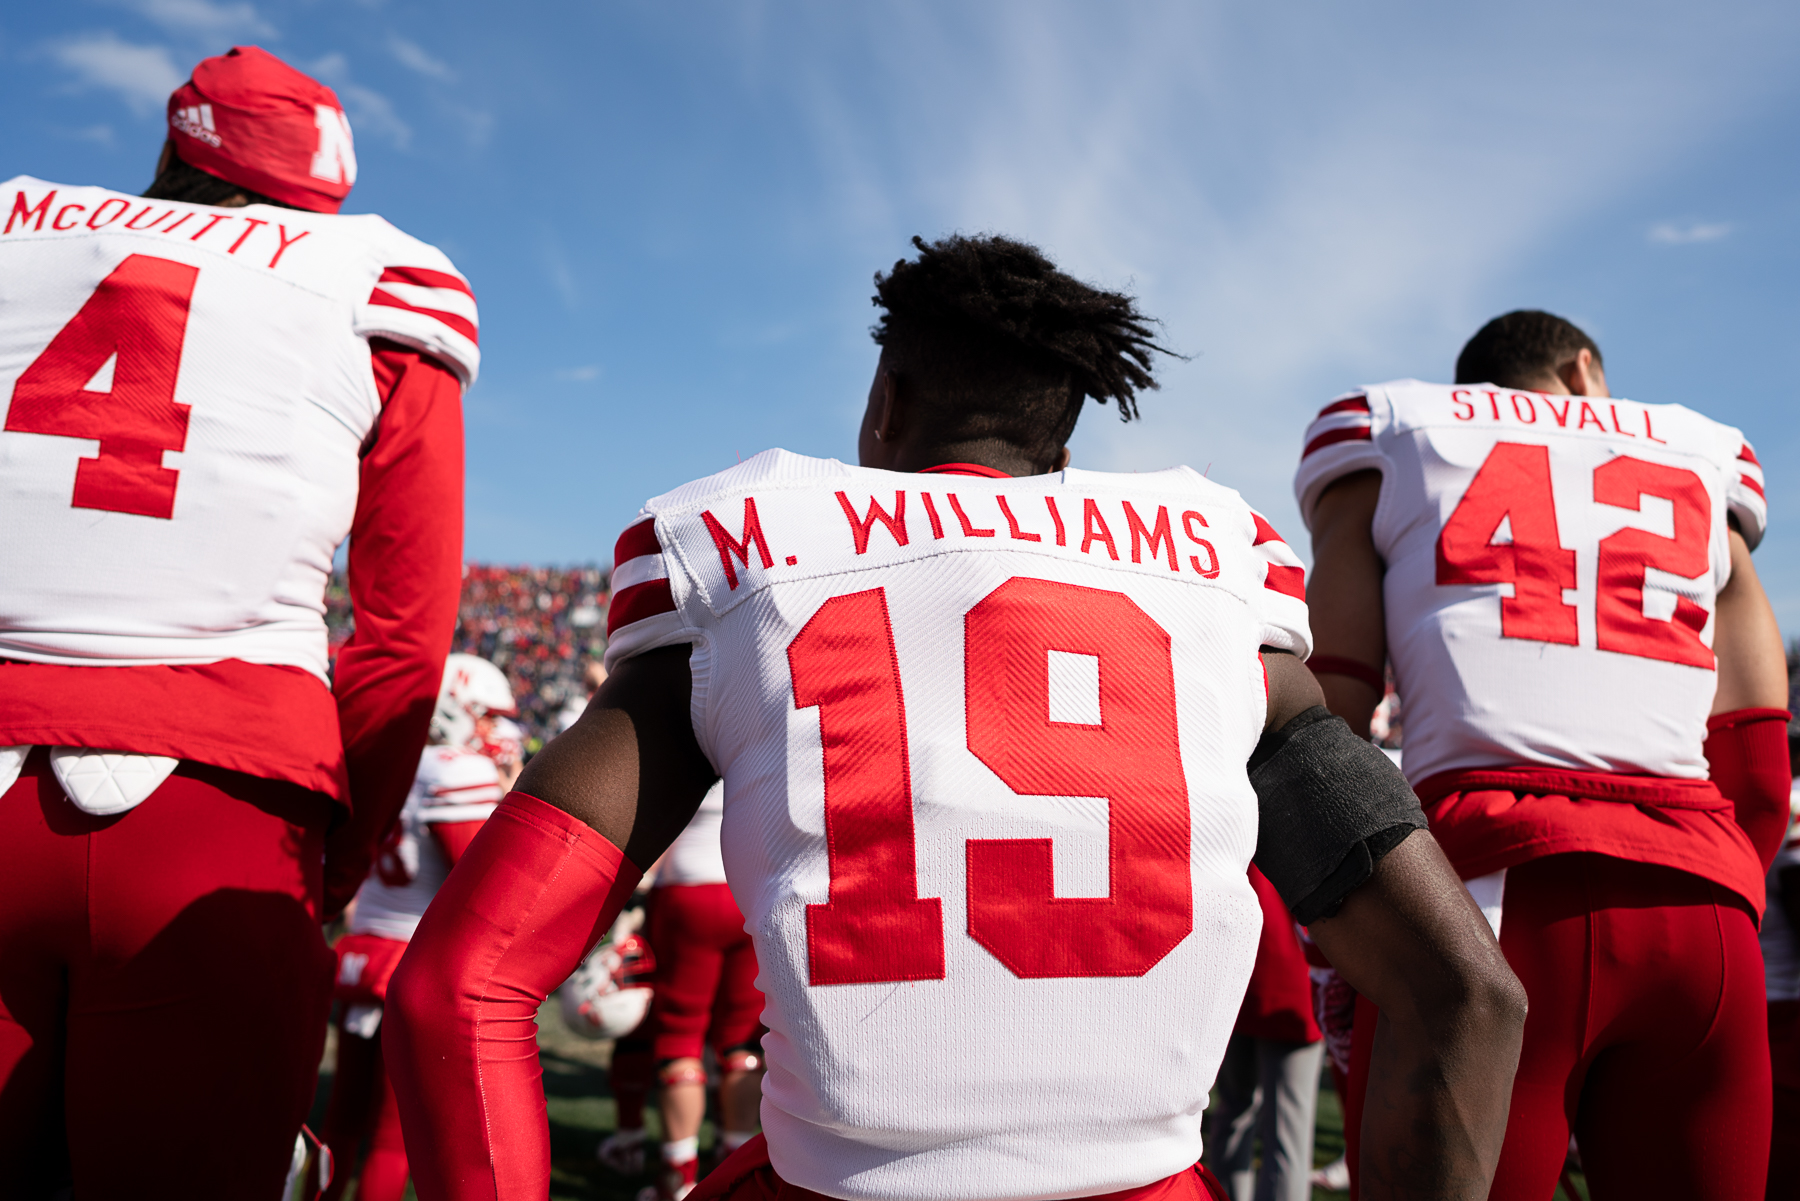 PB181012_FB_Nebr_vs_Northwestern_07942, paul bellinger boise editorial photographer, Huskers 2018 fb.jpg